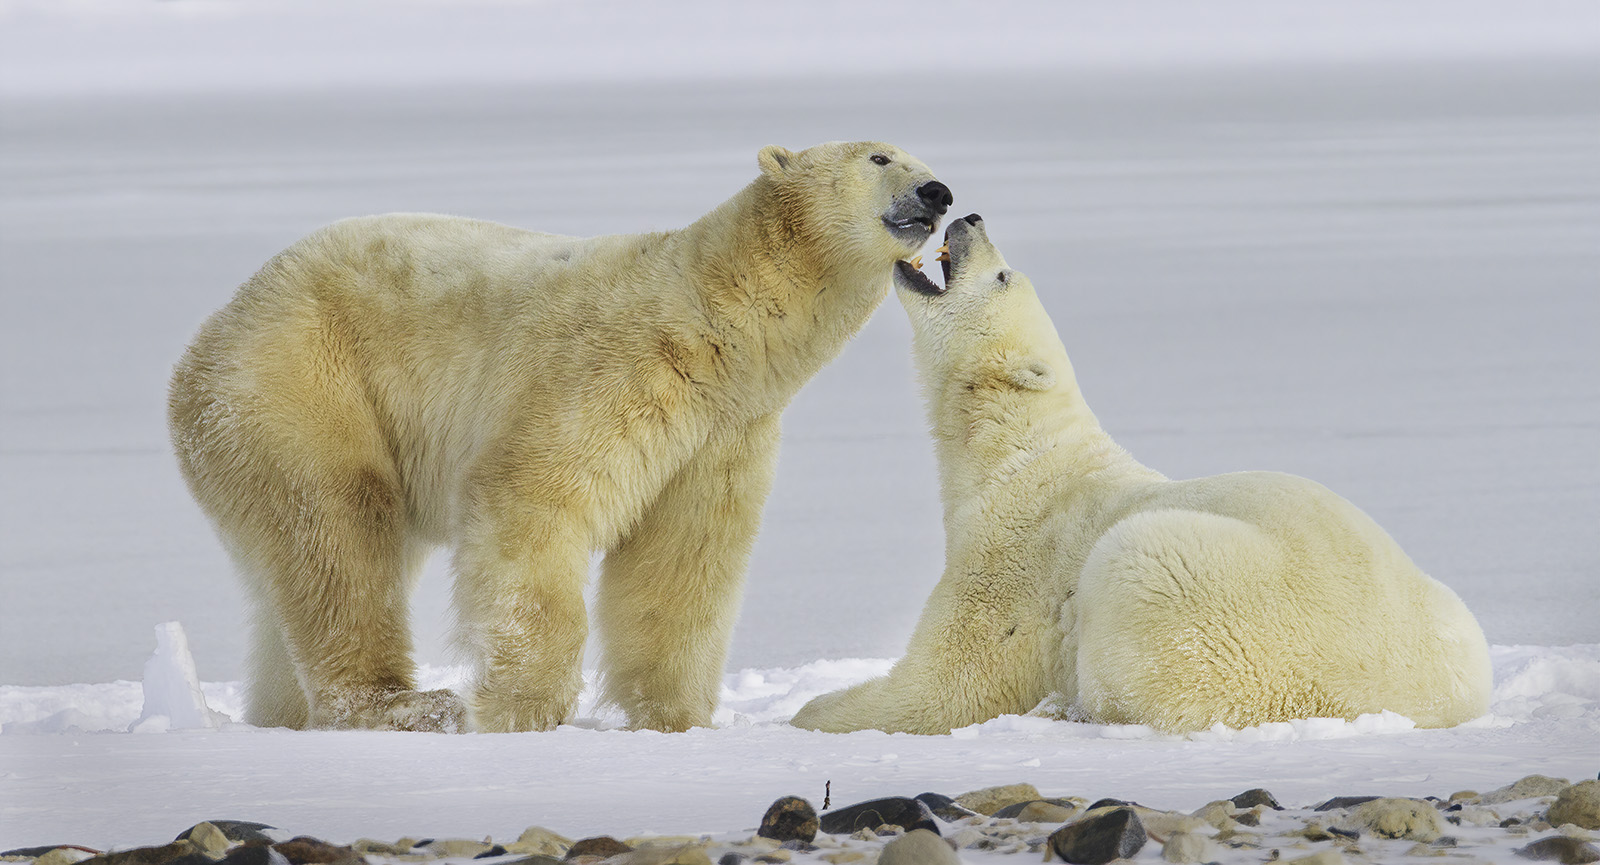 Two polar bears in the Churchill Wildlife Management Area.